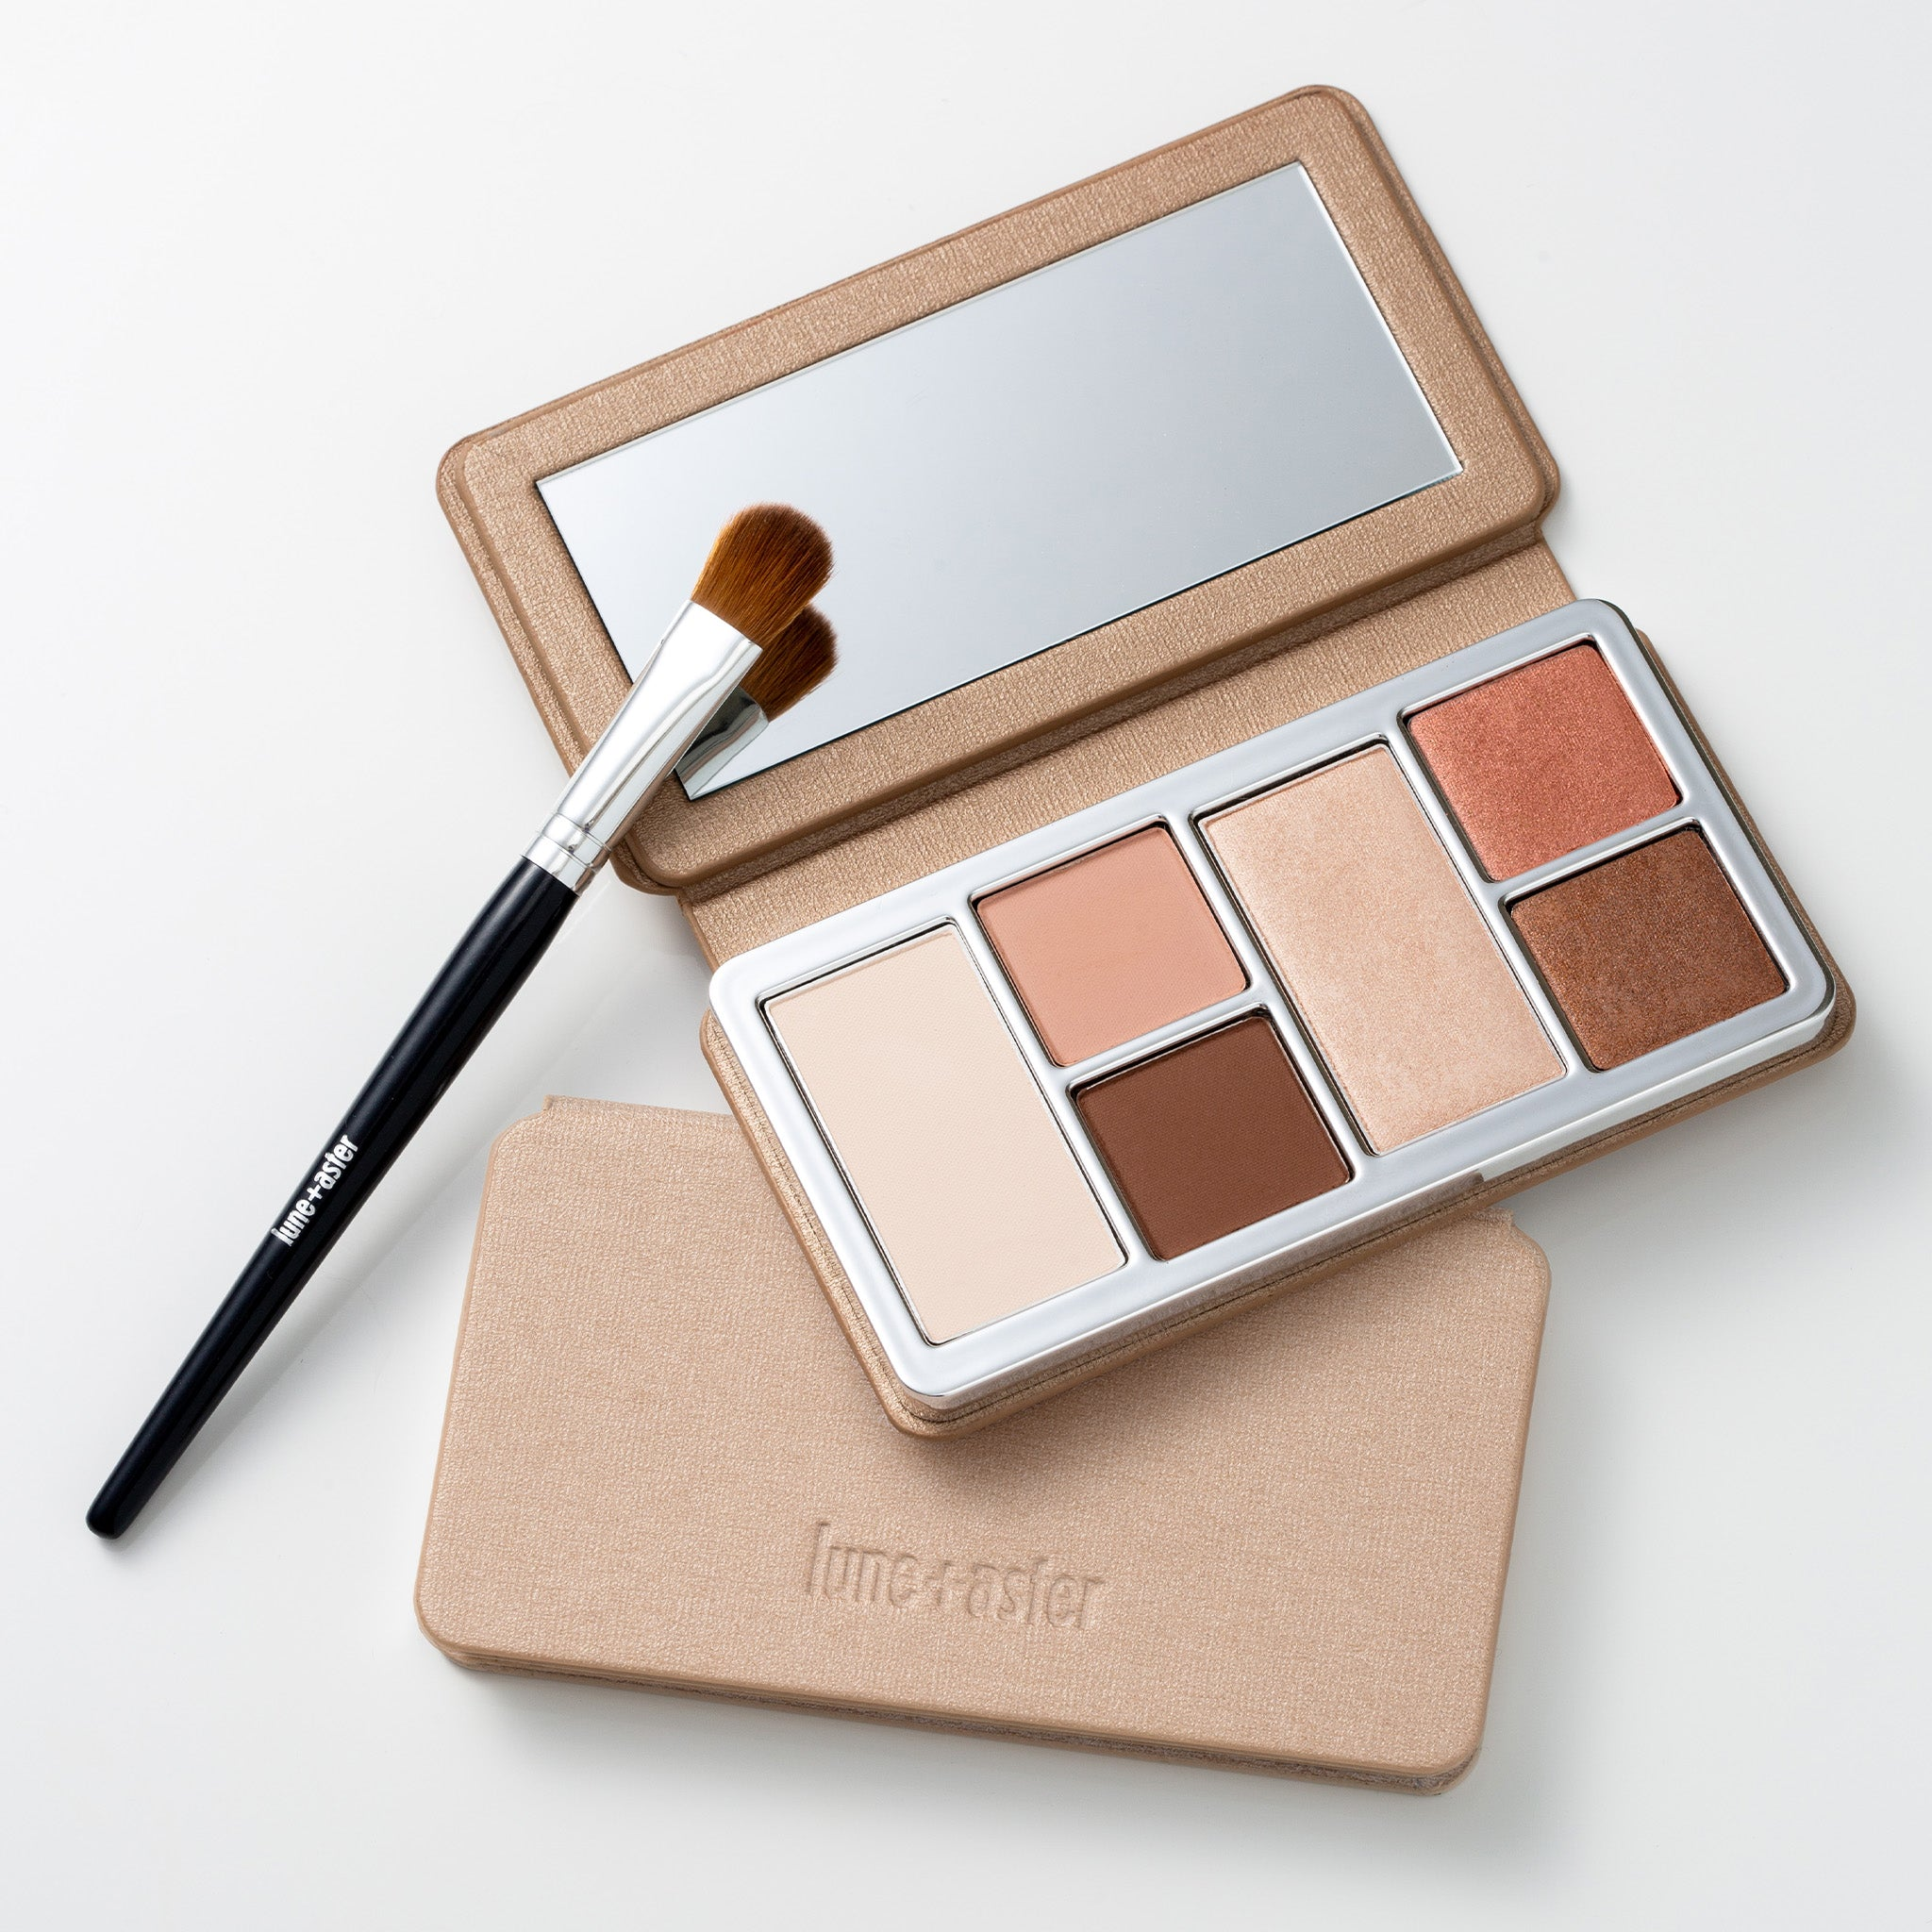 Golden Hour Eyeshadow Palette Limited Edition